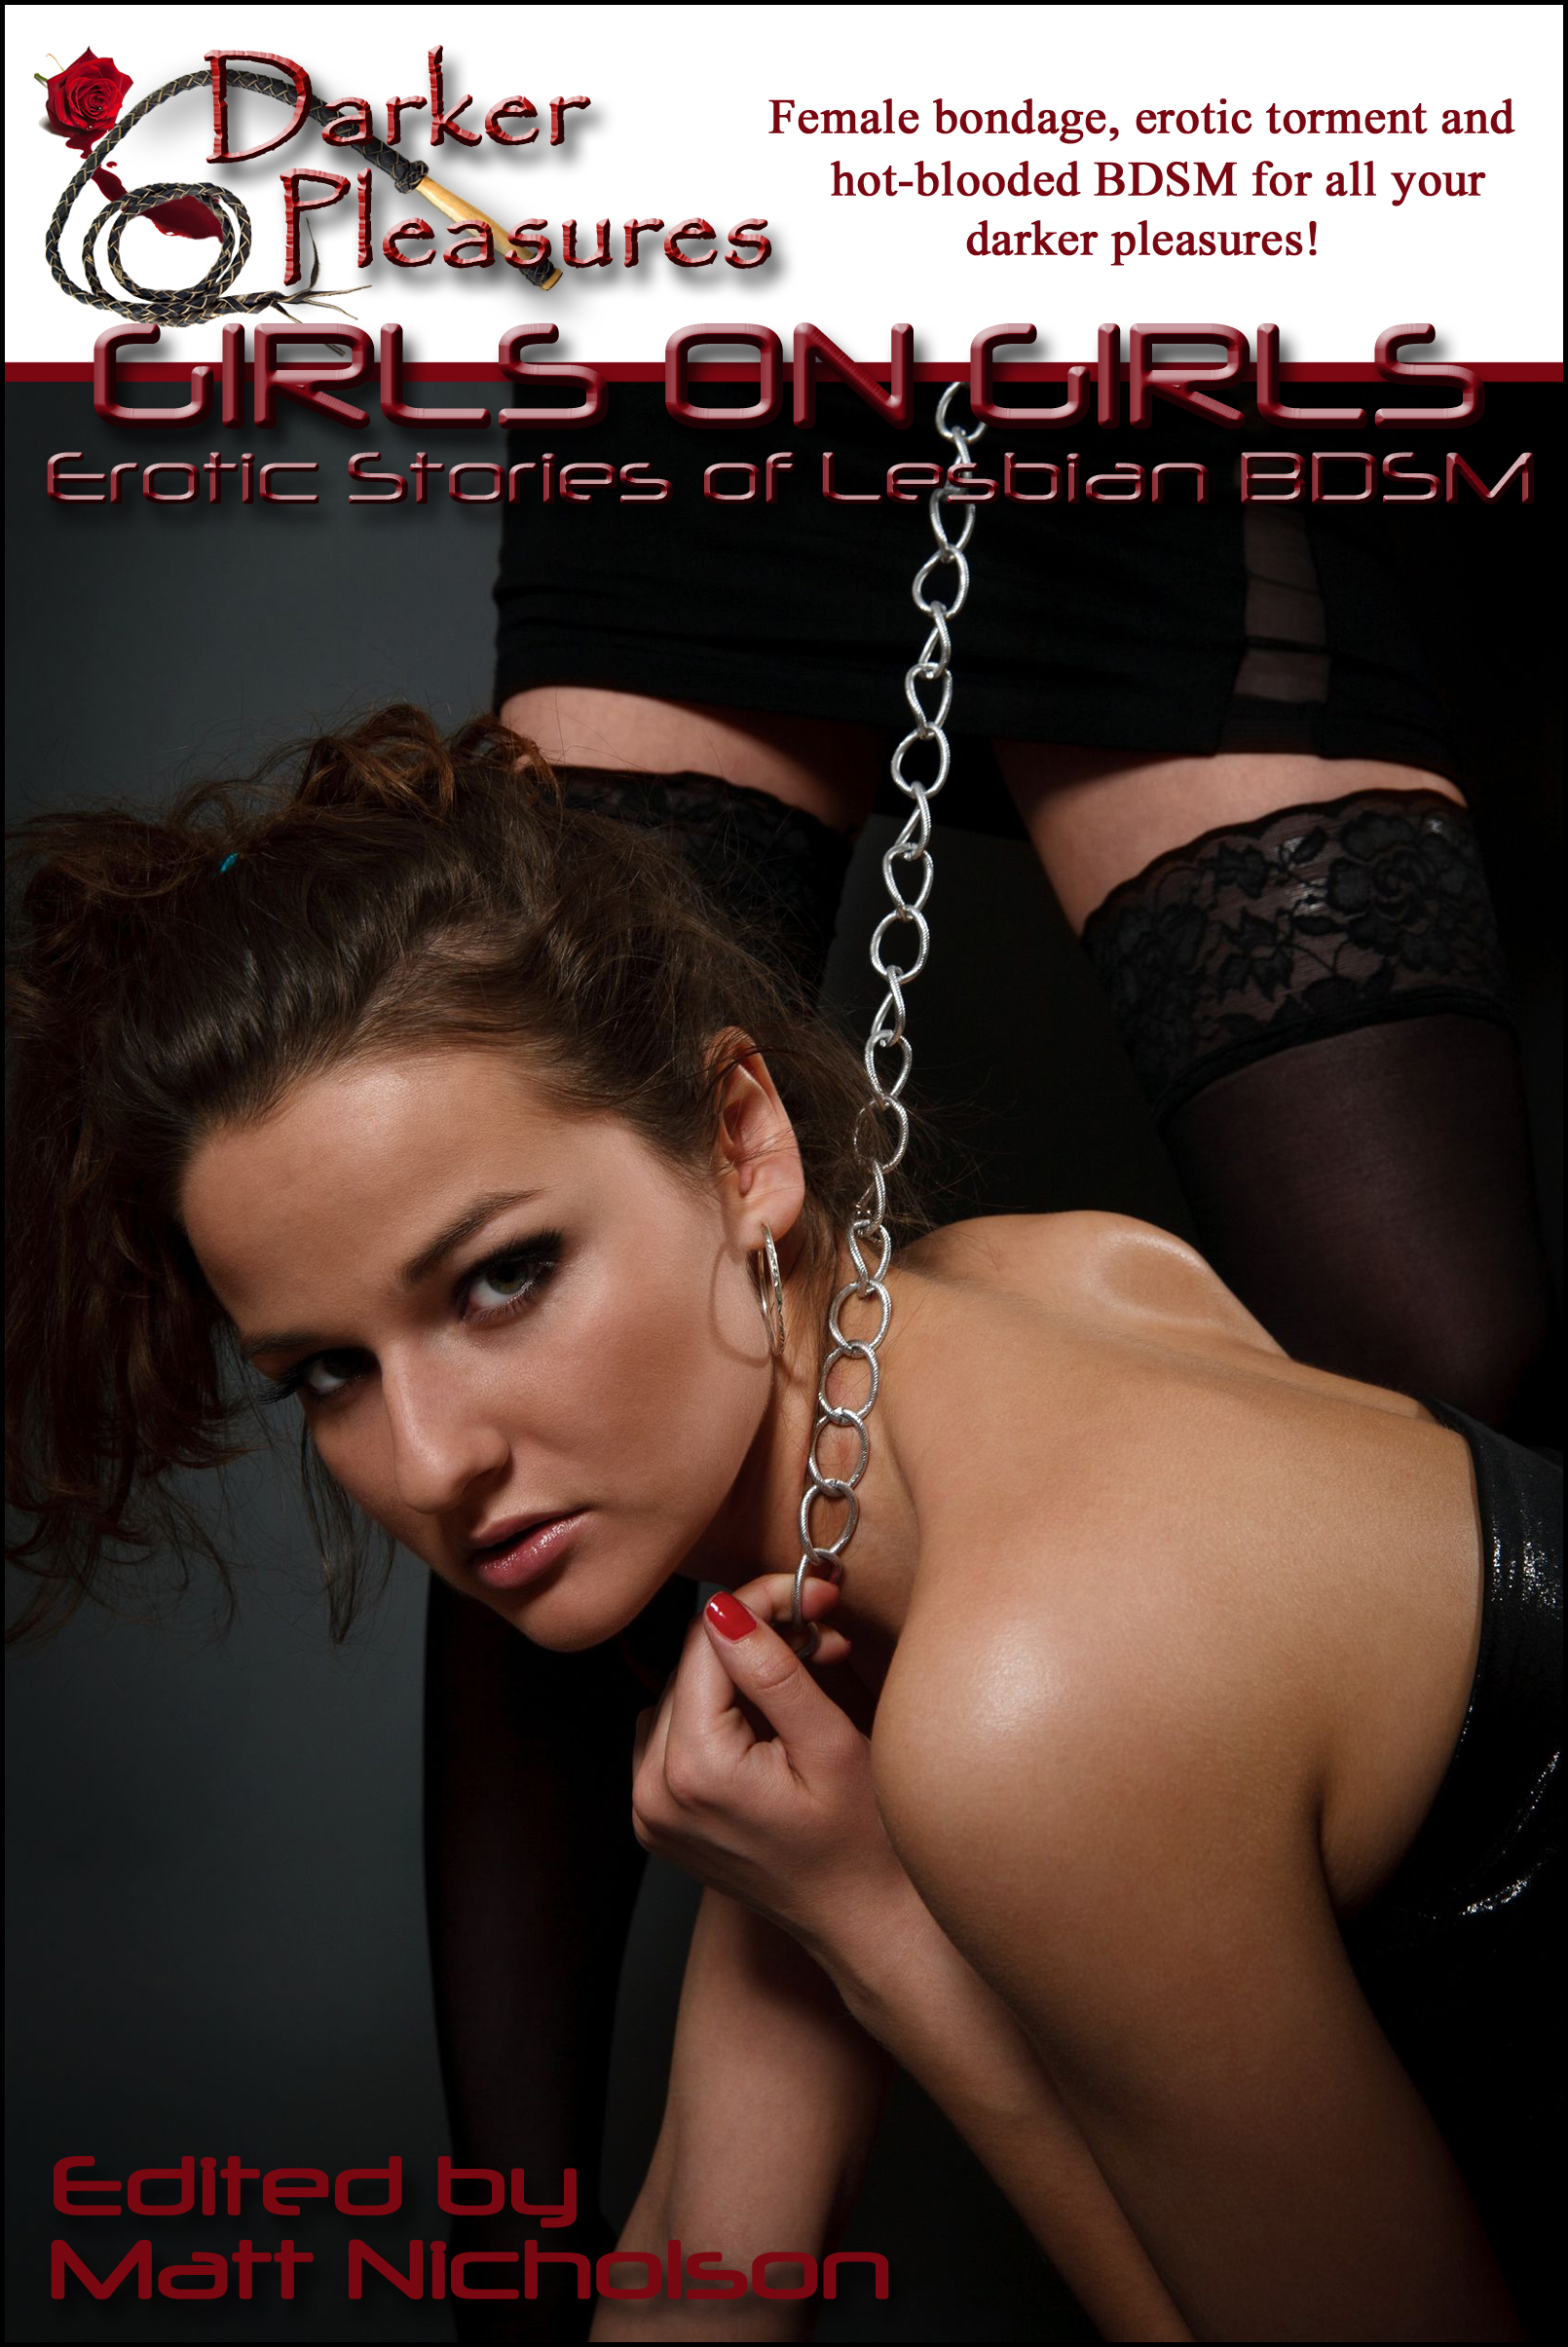 Esbian bondage links